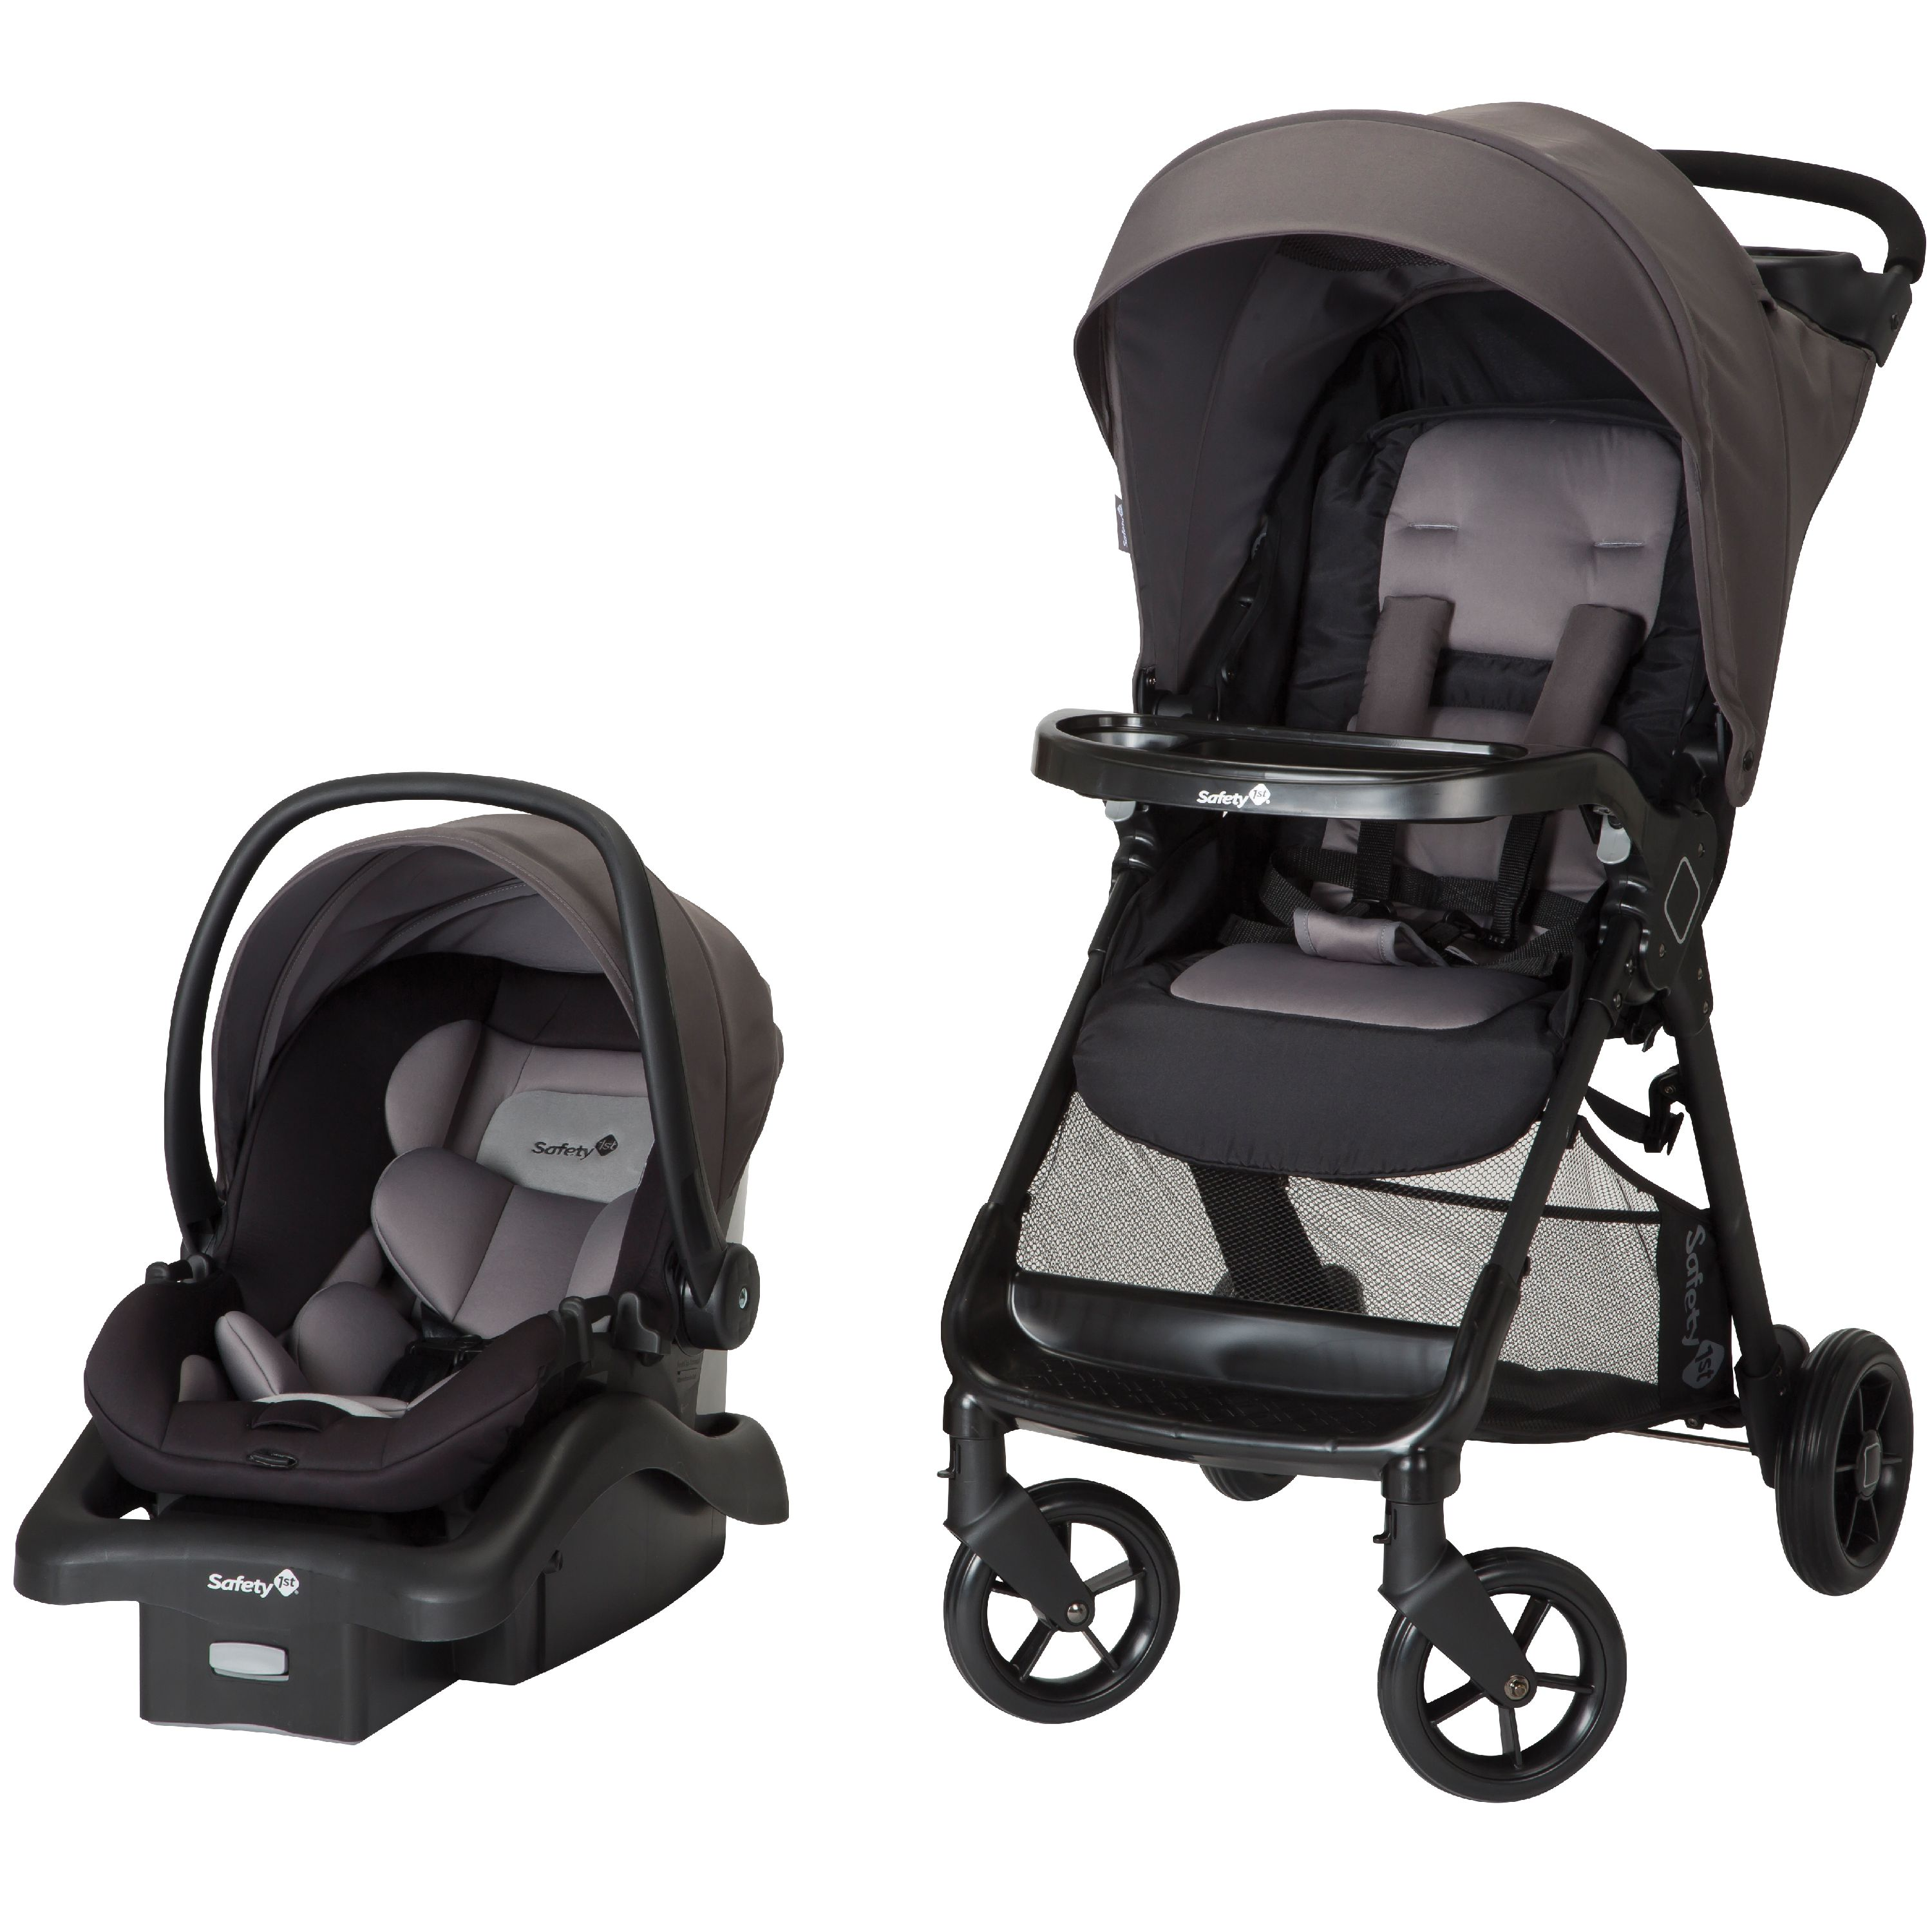 Safety 1st Smooth Ride Travel System With Infant Car Seat Monument Walmart Com Walmart Com